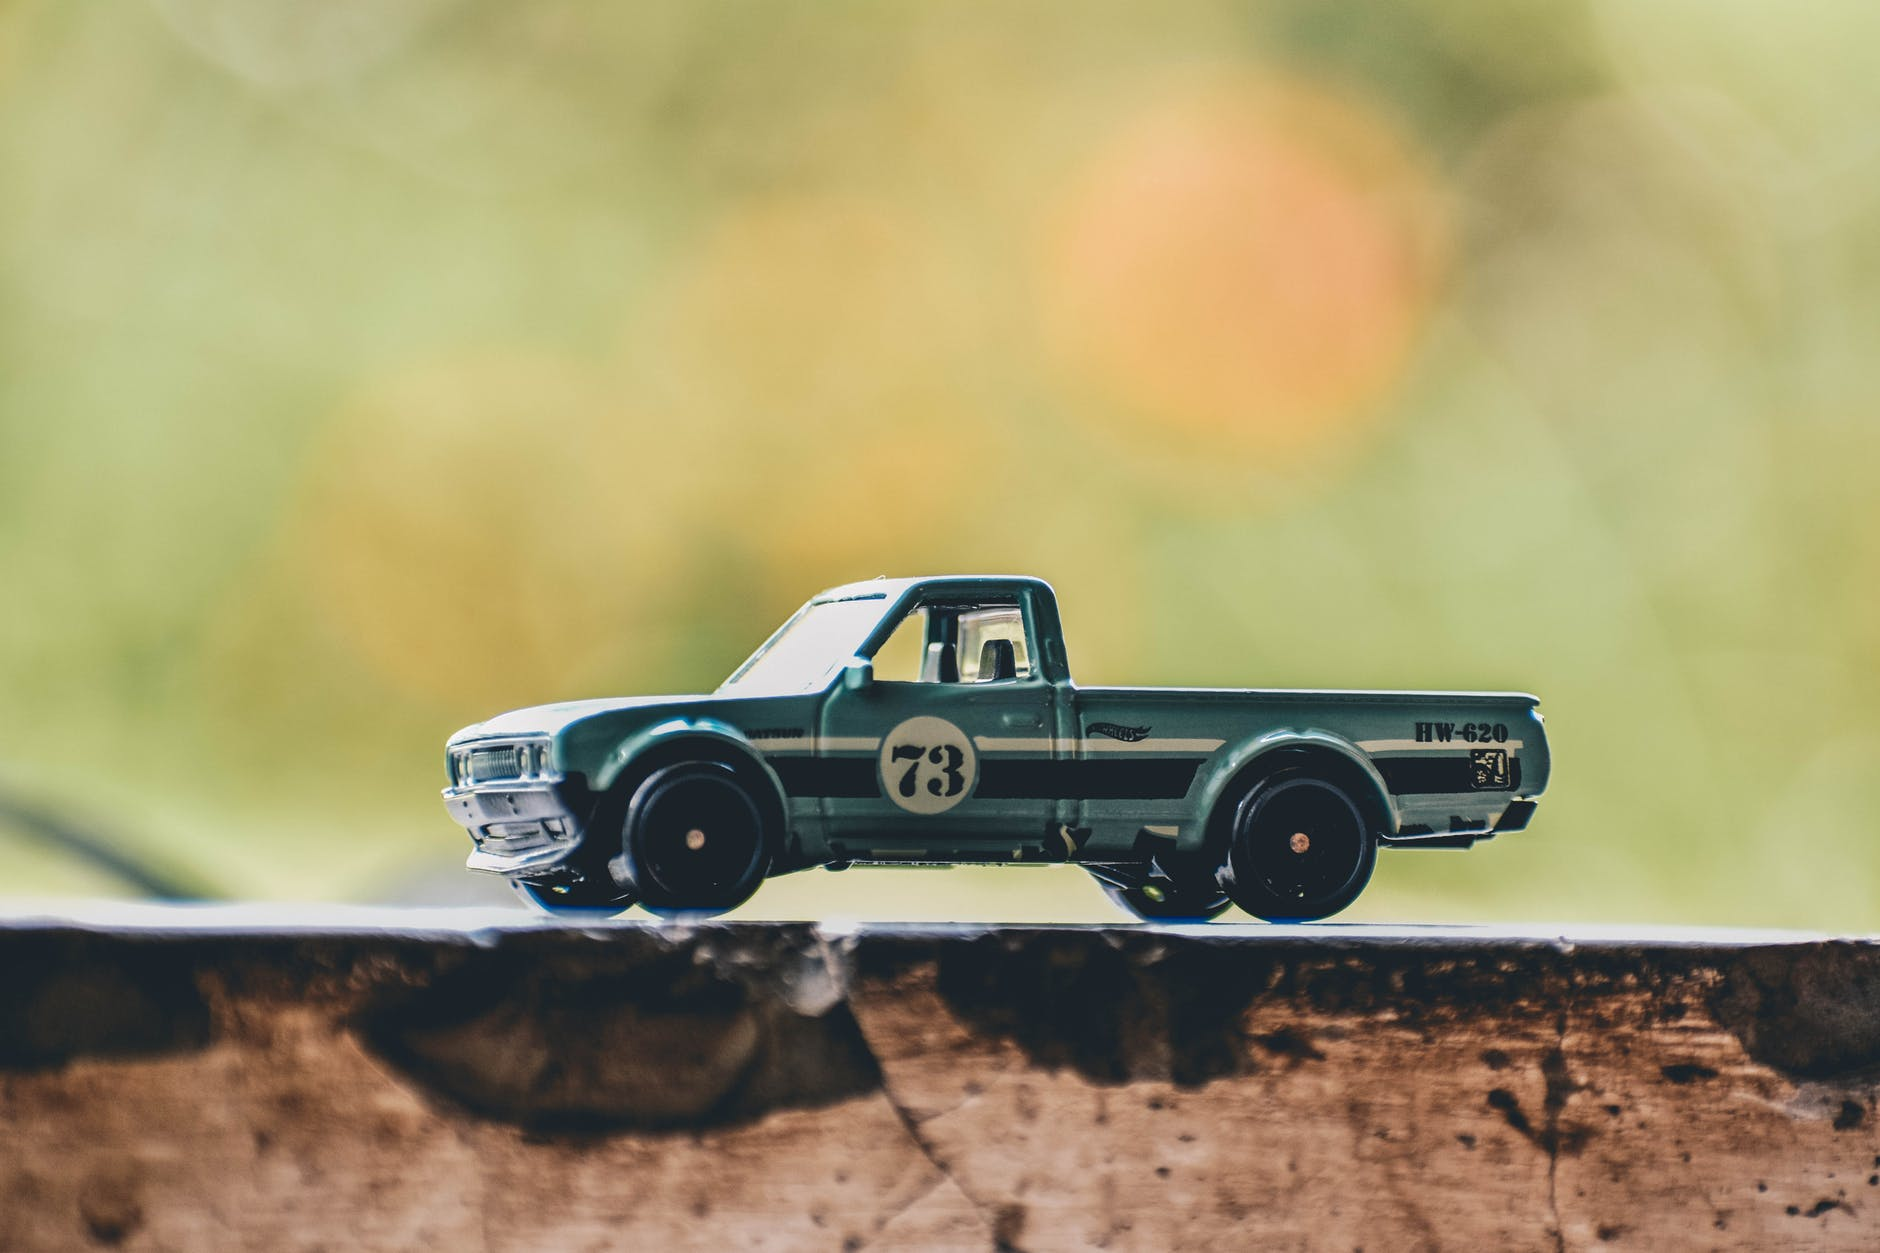 selective focus photography of toy truck